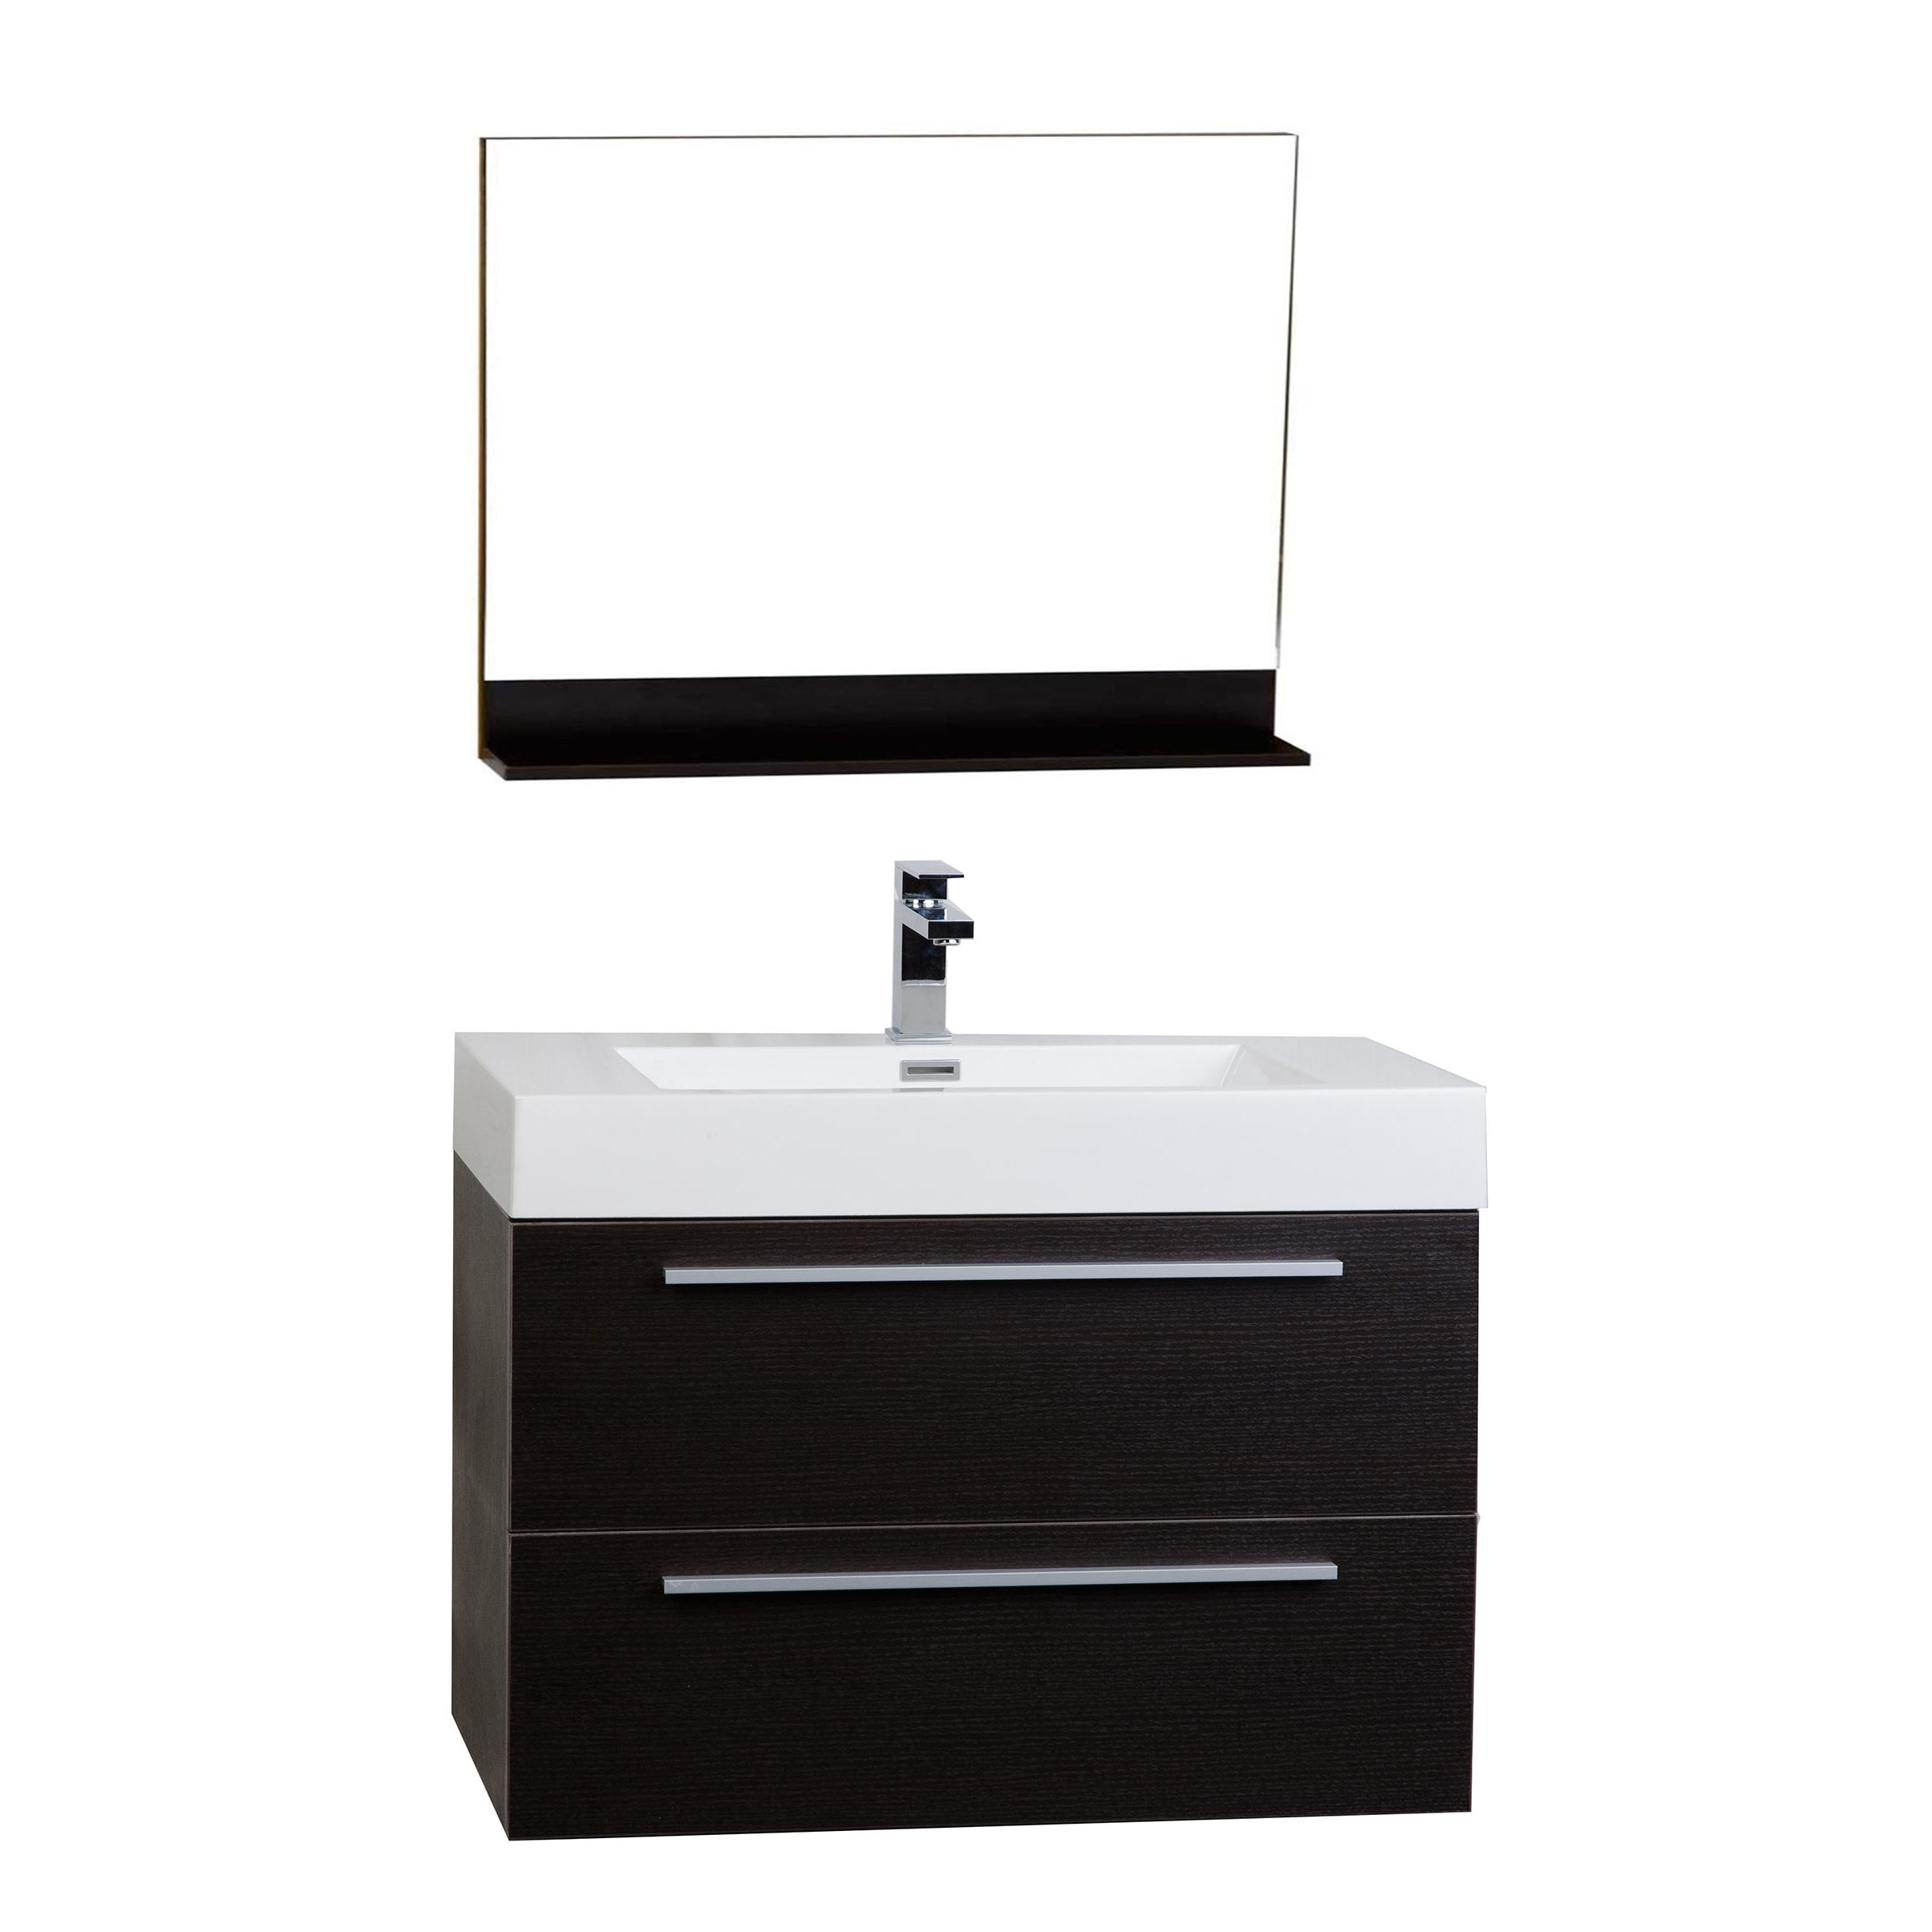 wall elegant tar vanity amare mount set from sink of corner mounted cabinet bathroom